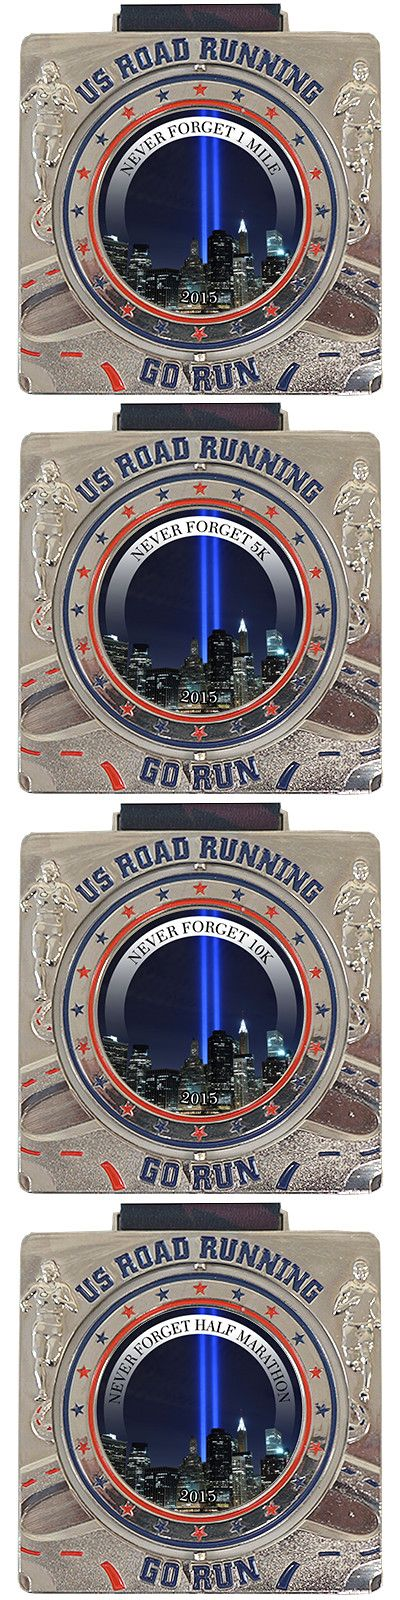 US Road Running - Never Forget Virtual Race